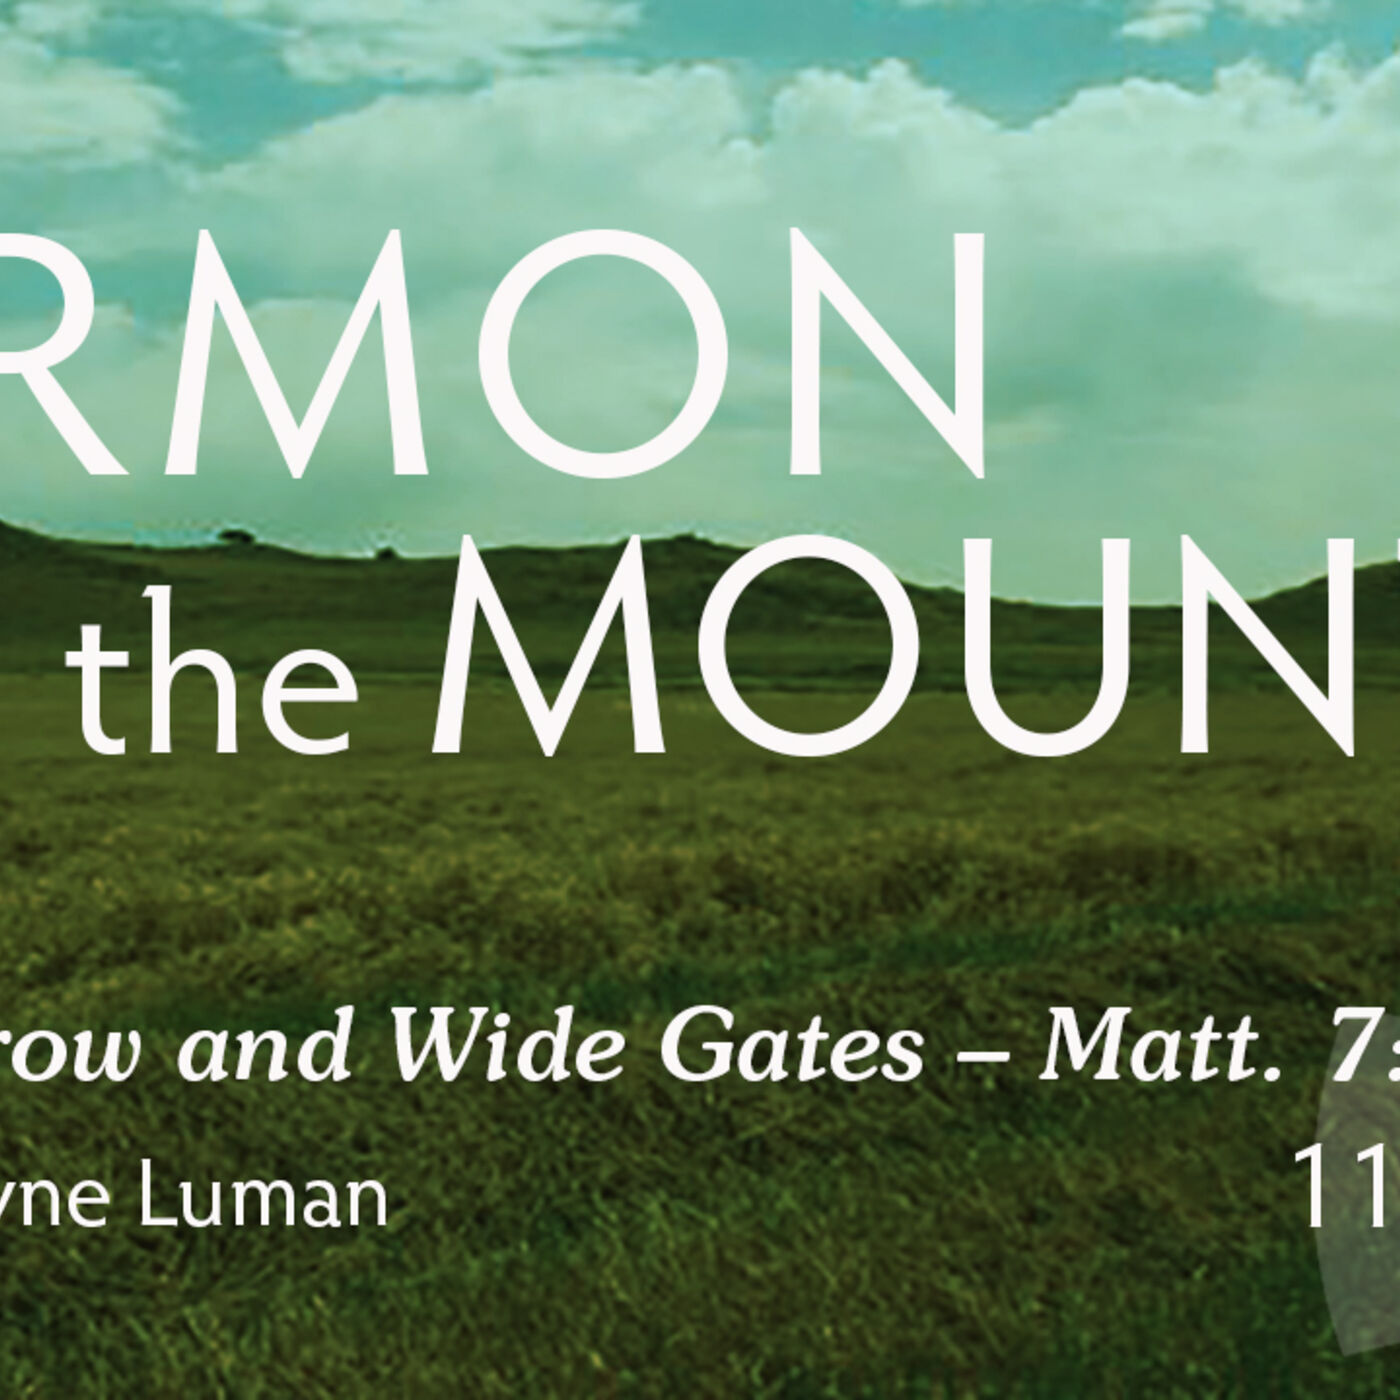 The Narrow and Wide Gates